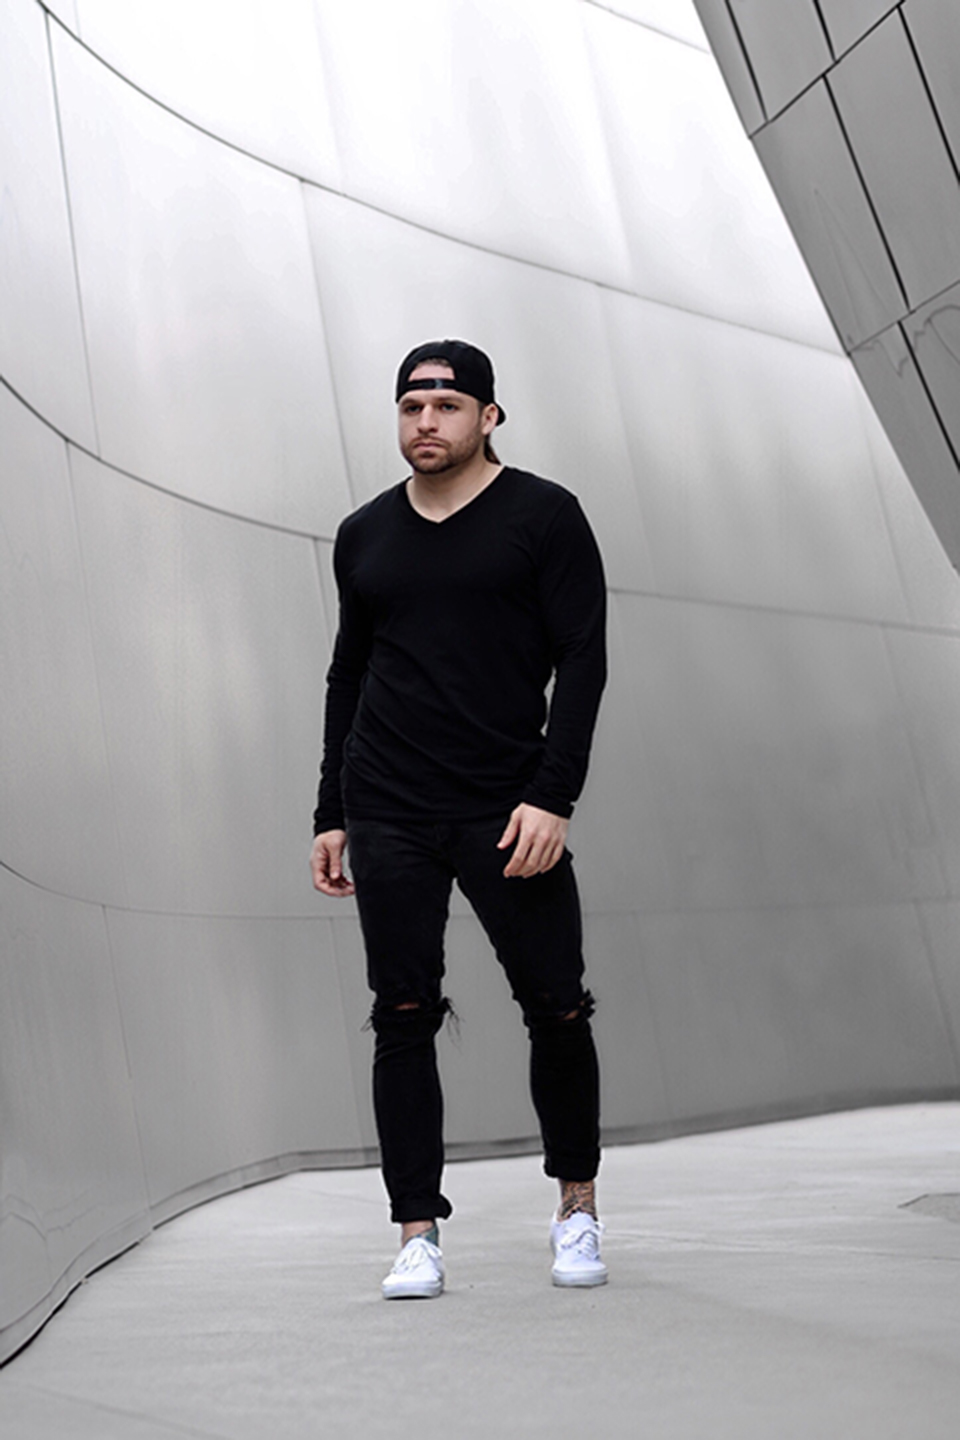 River Davis Men's Fashion wearing all blvck